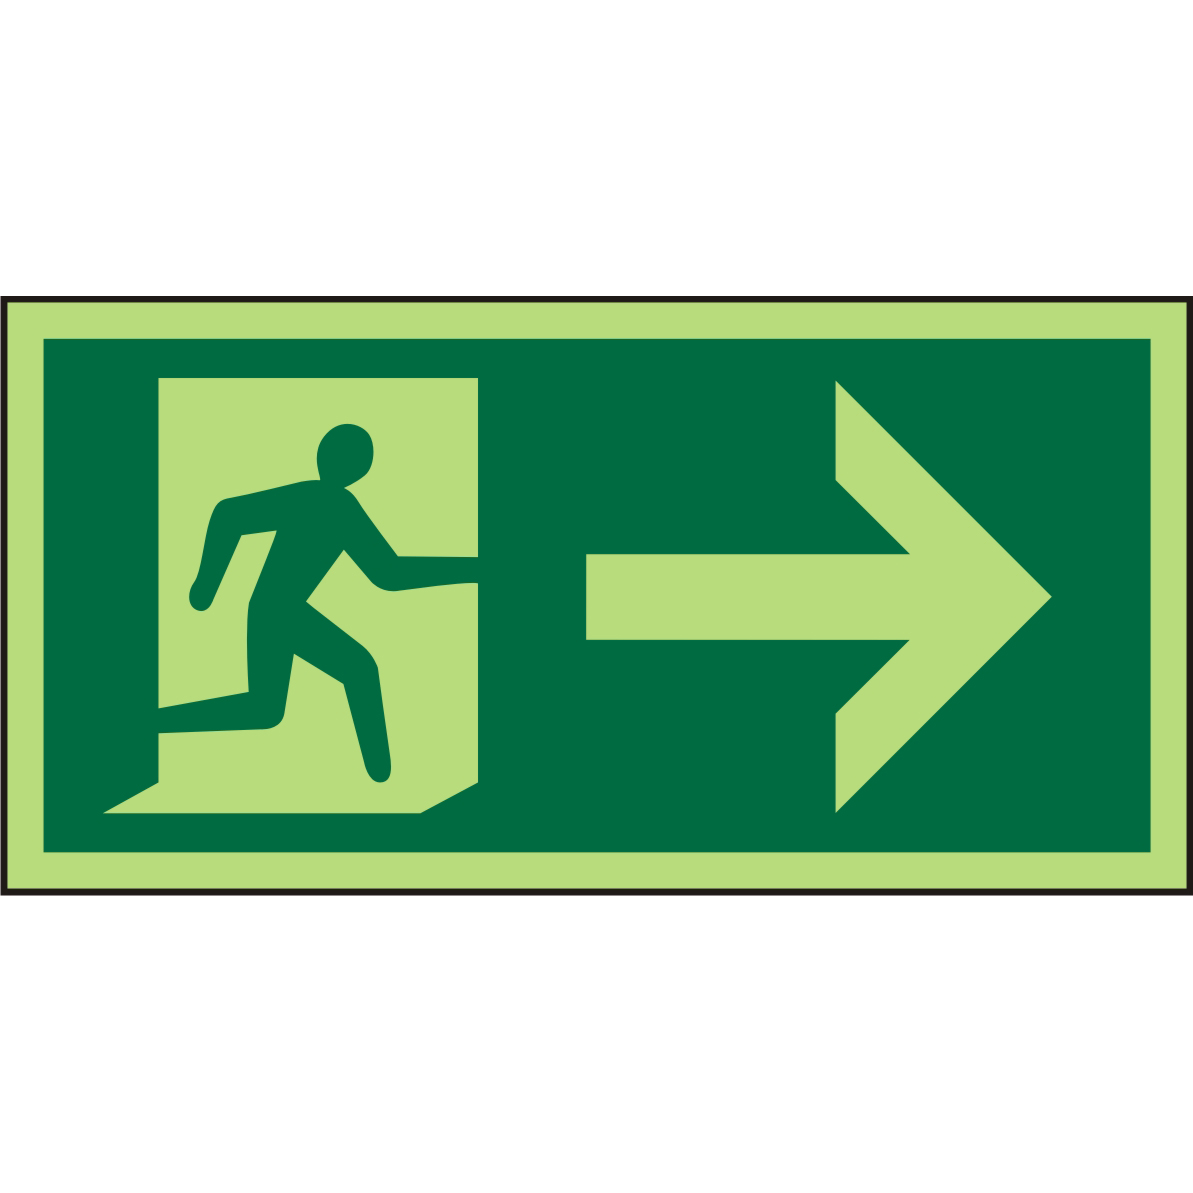 Photolum Sign 300x150 1mm Plastic Man Running & Arrow right Ref PSP065SRP300x150 *Up to 10 Day Leadtime*